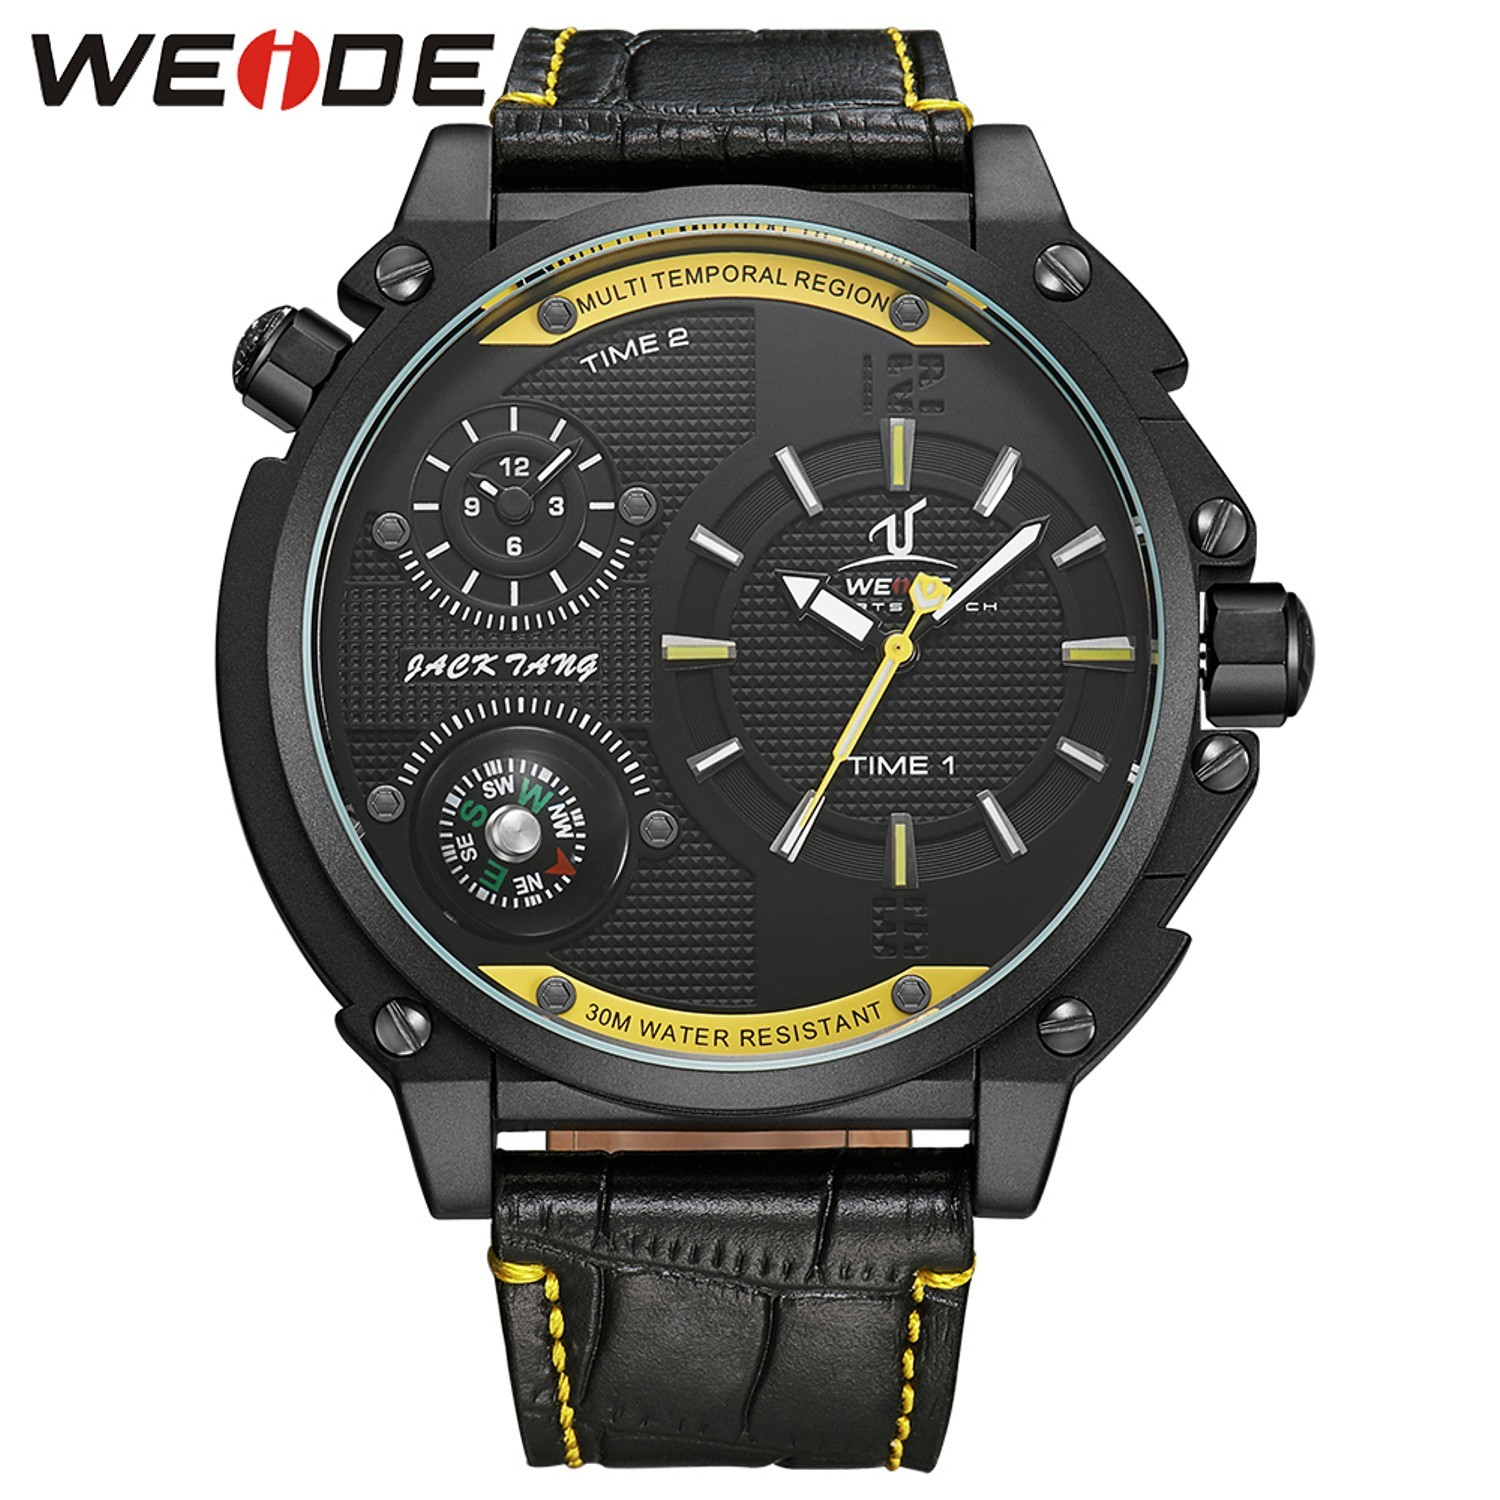 WEIDE-Brand-Sports-Compass-Leather-Strap-Band-Watch-Dual-Time-Zone-Analog-Display-Clock-Oversize-Men_1500x1500_STRETCH_504.jpg